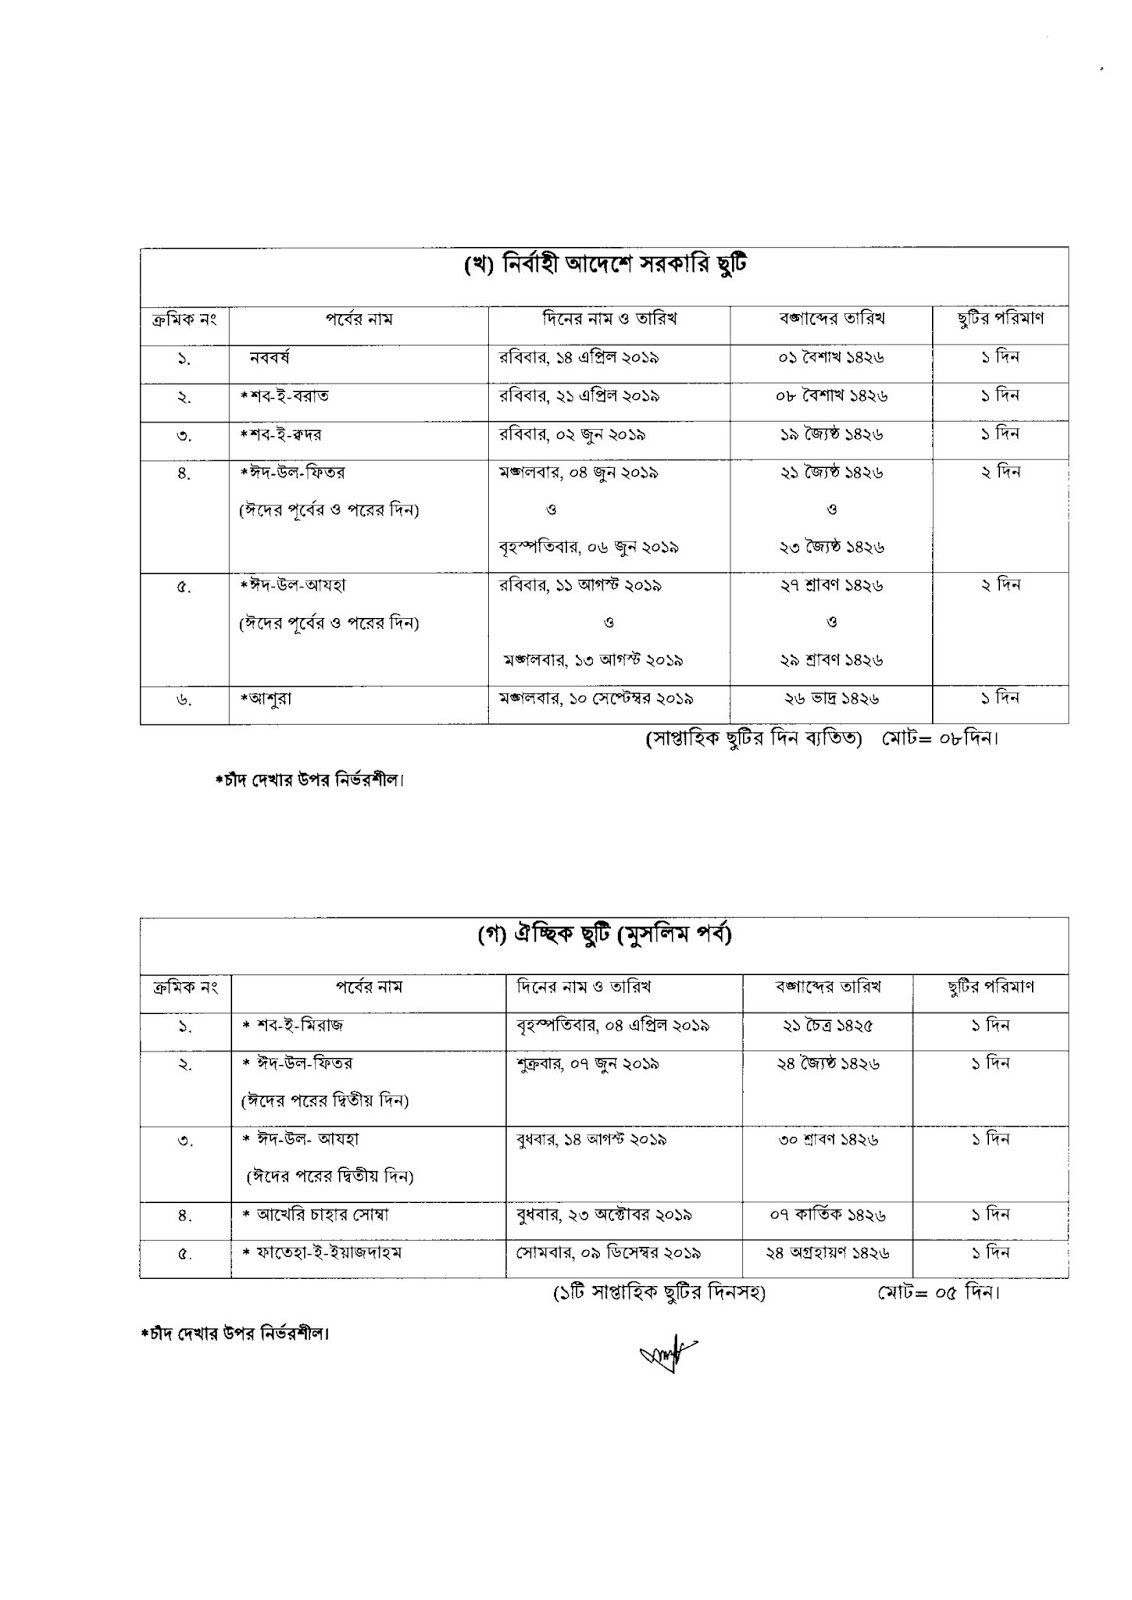 Government of the People's Republic of Bangladesh  2019 holidays list